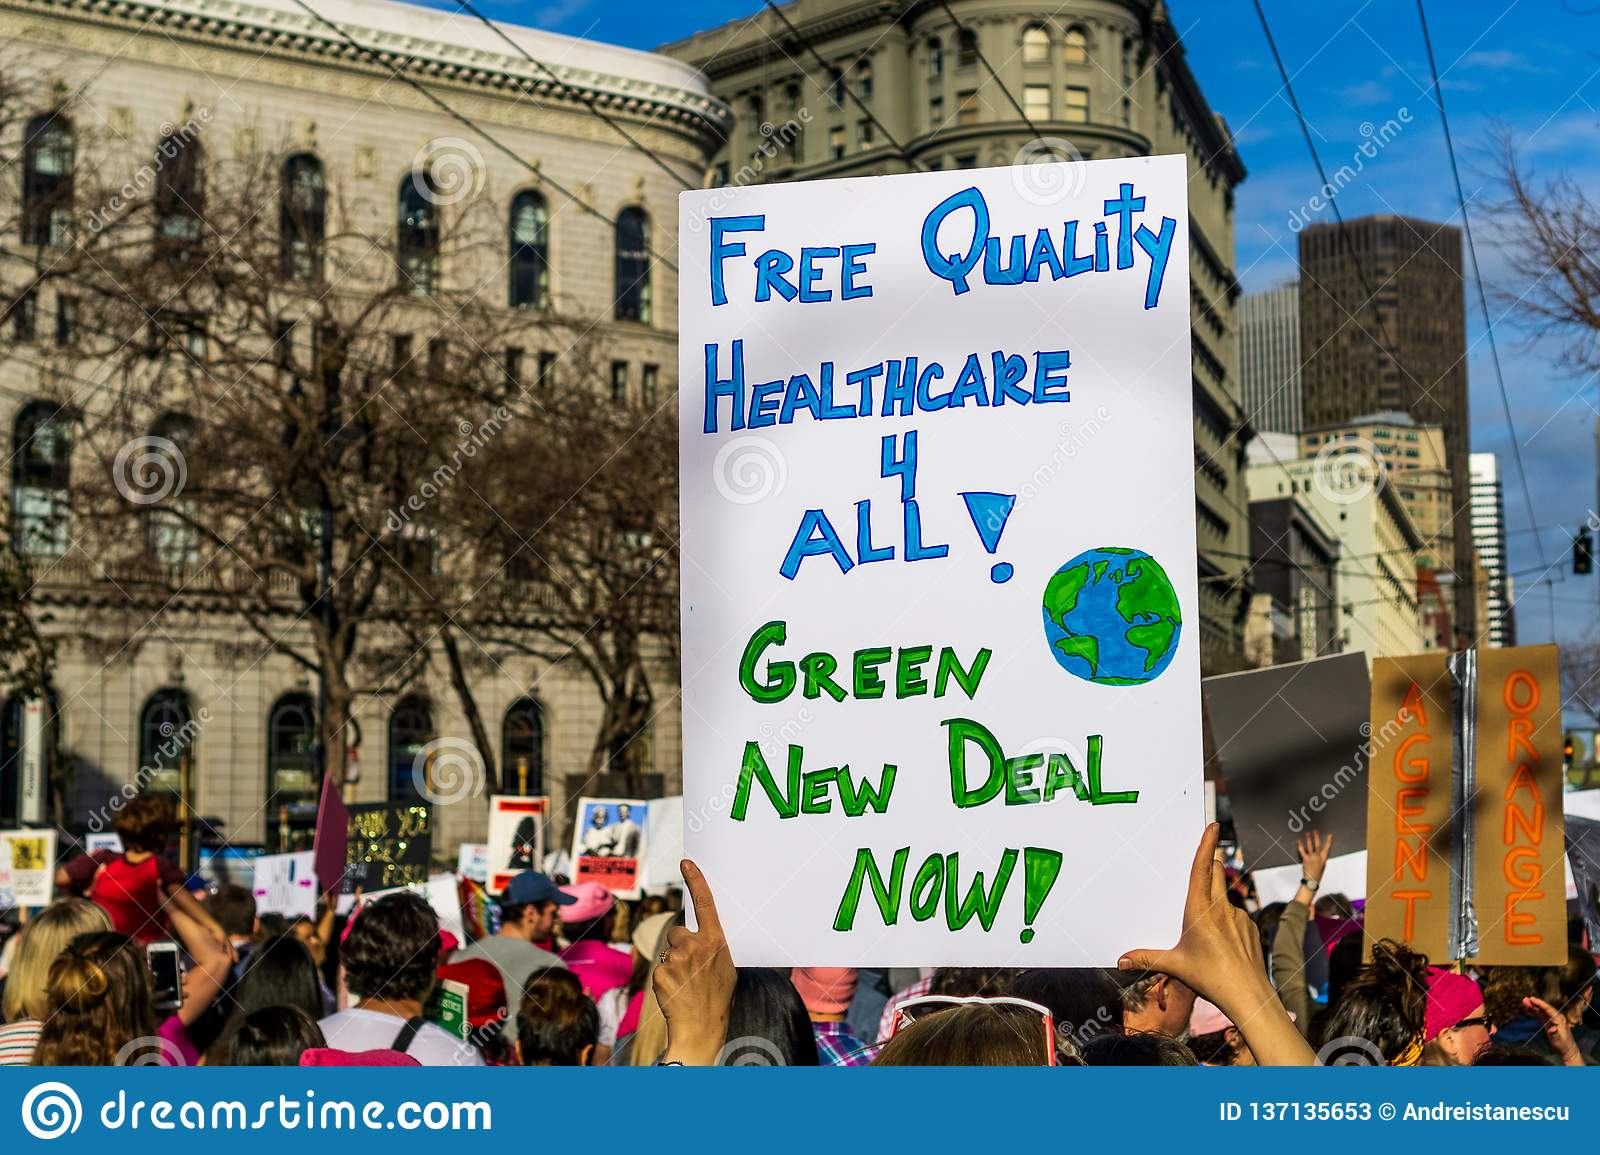 January 19, 2019 San Francisco / CA / USA - Women`s March Free Healthcare and Green New Deal sign